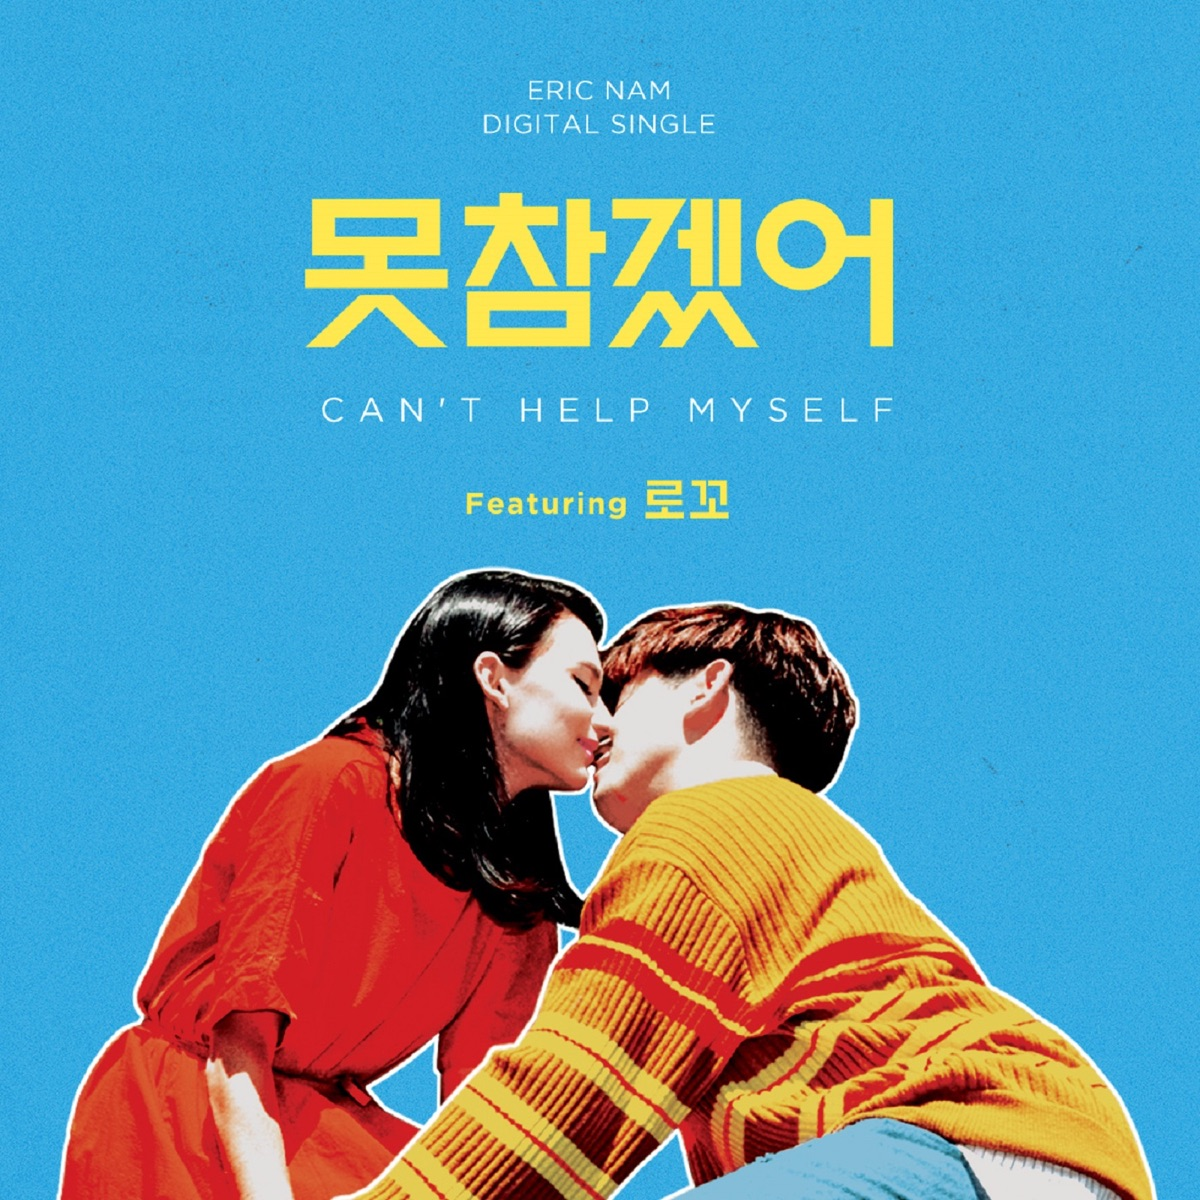 Can't Help Myself Album Cover by Eric Nam